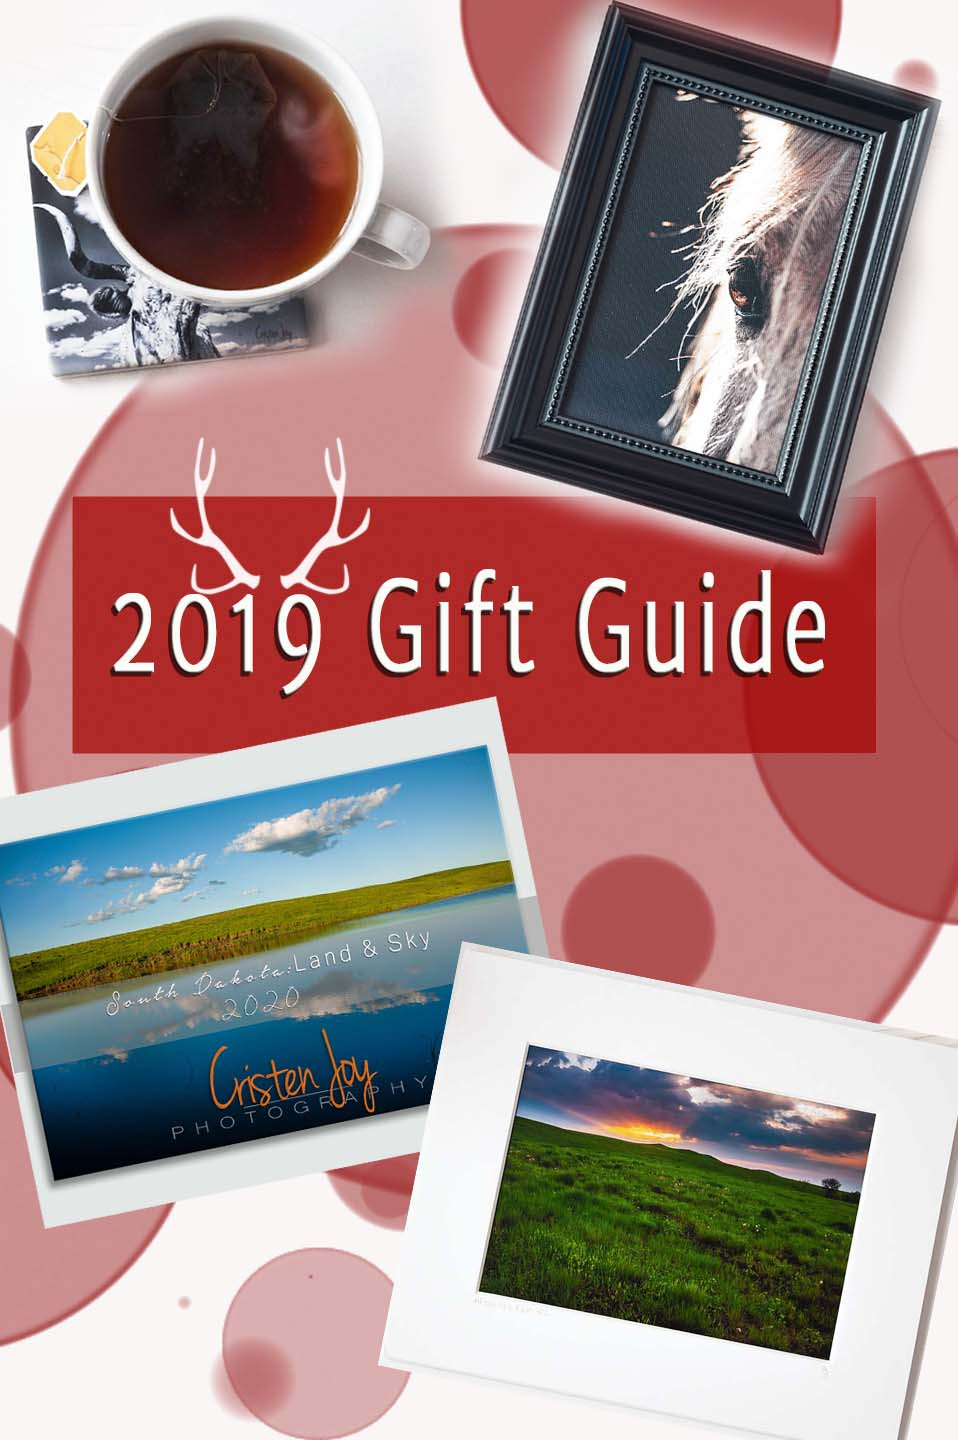 2019 Gift Guide